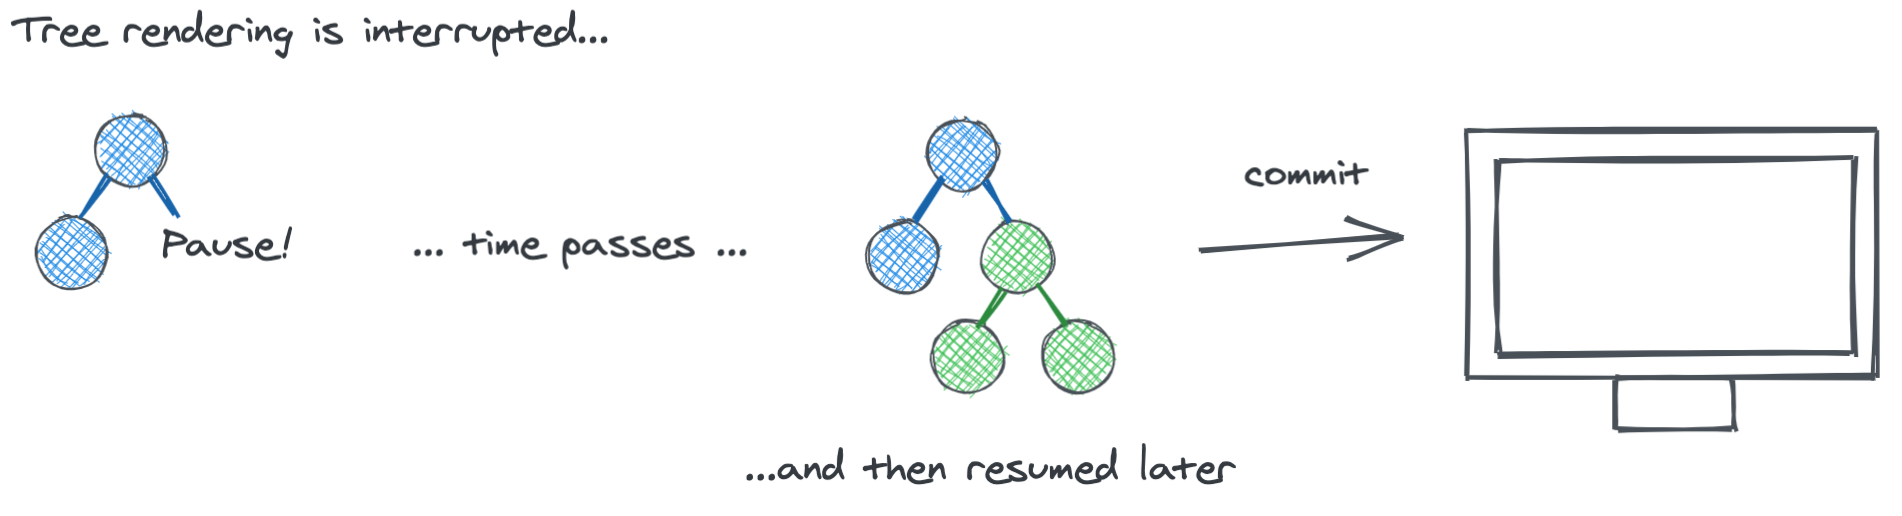 React pauses while rendering a tree of components. Some components are rendered before the pause while others are rendered after the pause.